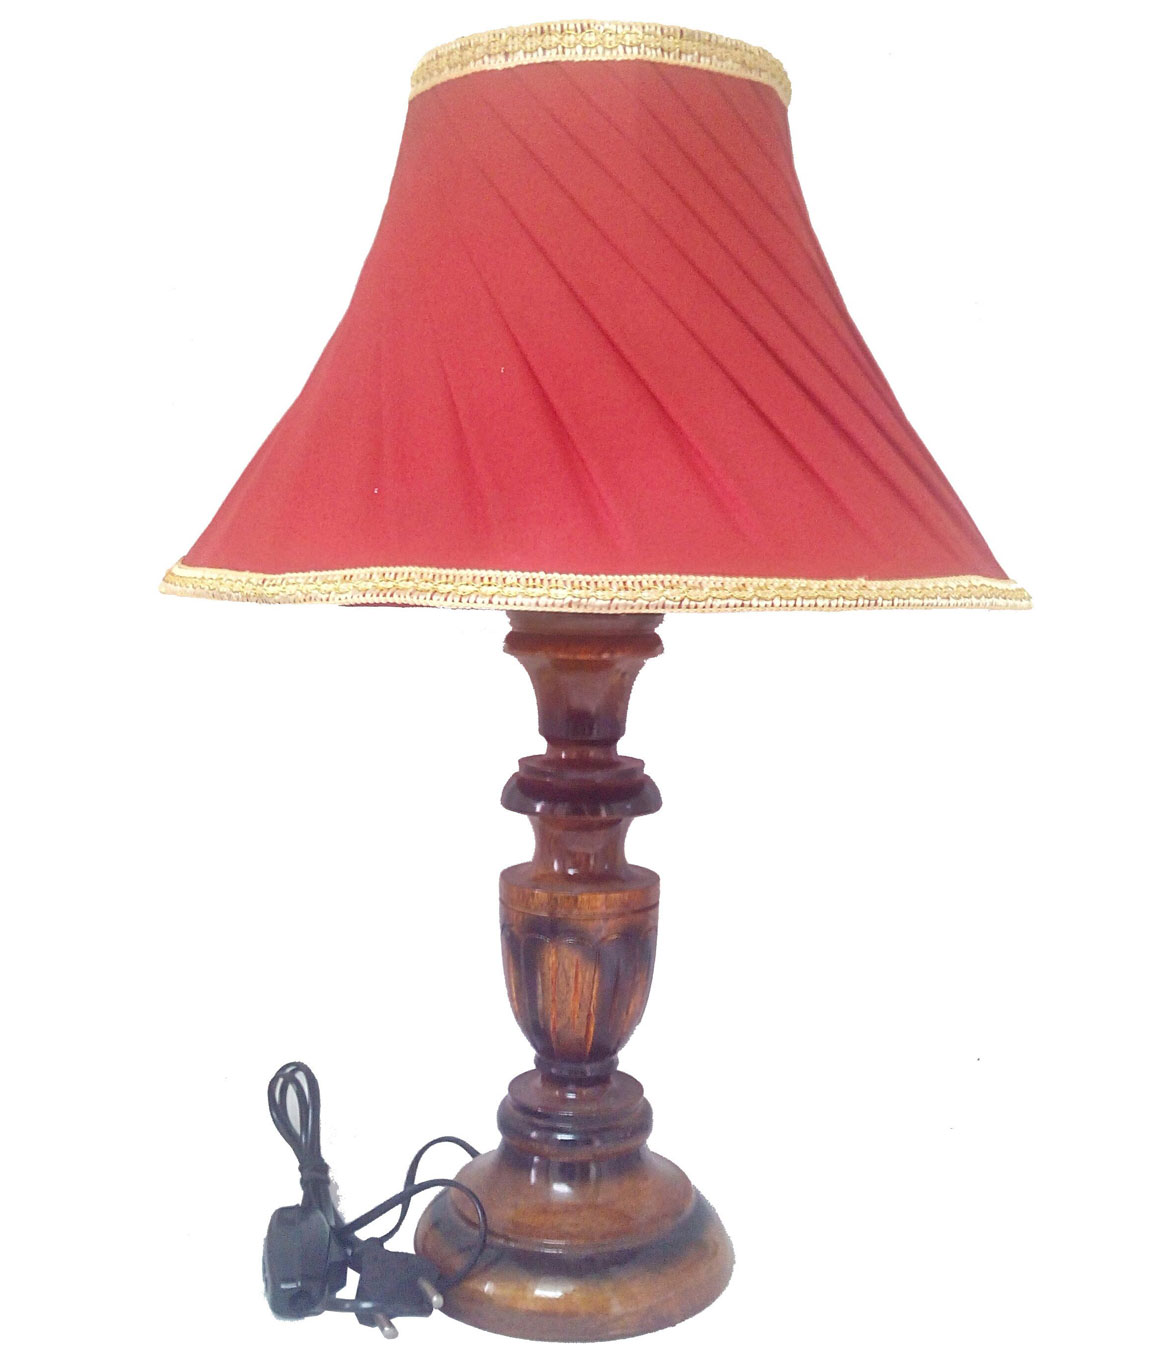 RDC Wooden Designer Table Lamp with 12 Inches Round Slanting Pleated Red with Golden Lace Border Lamp Shade